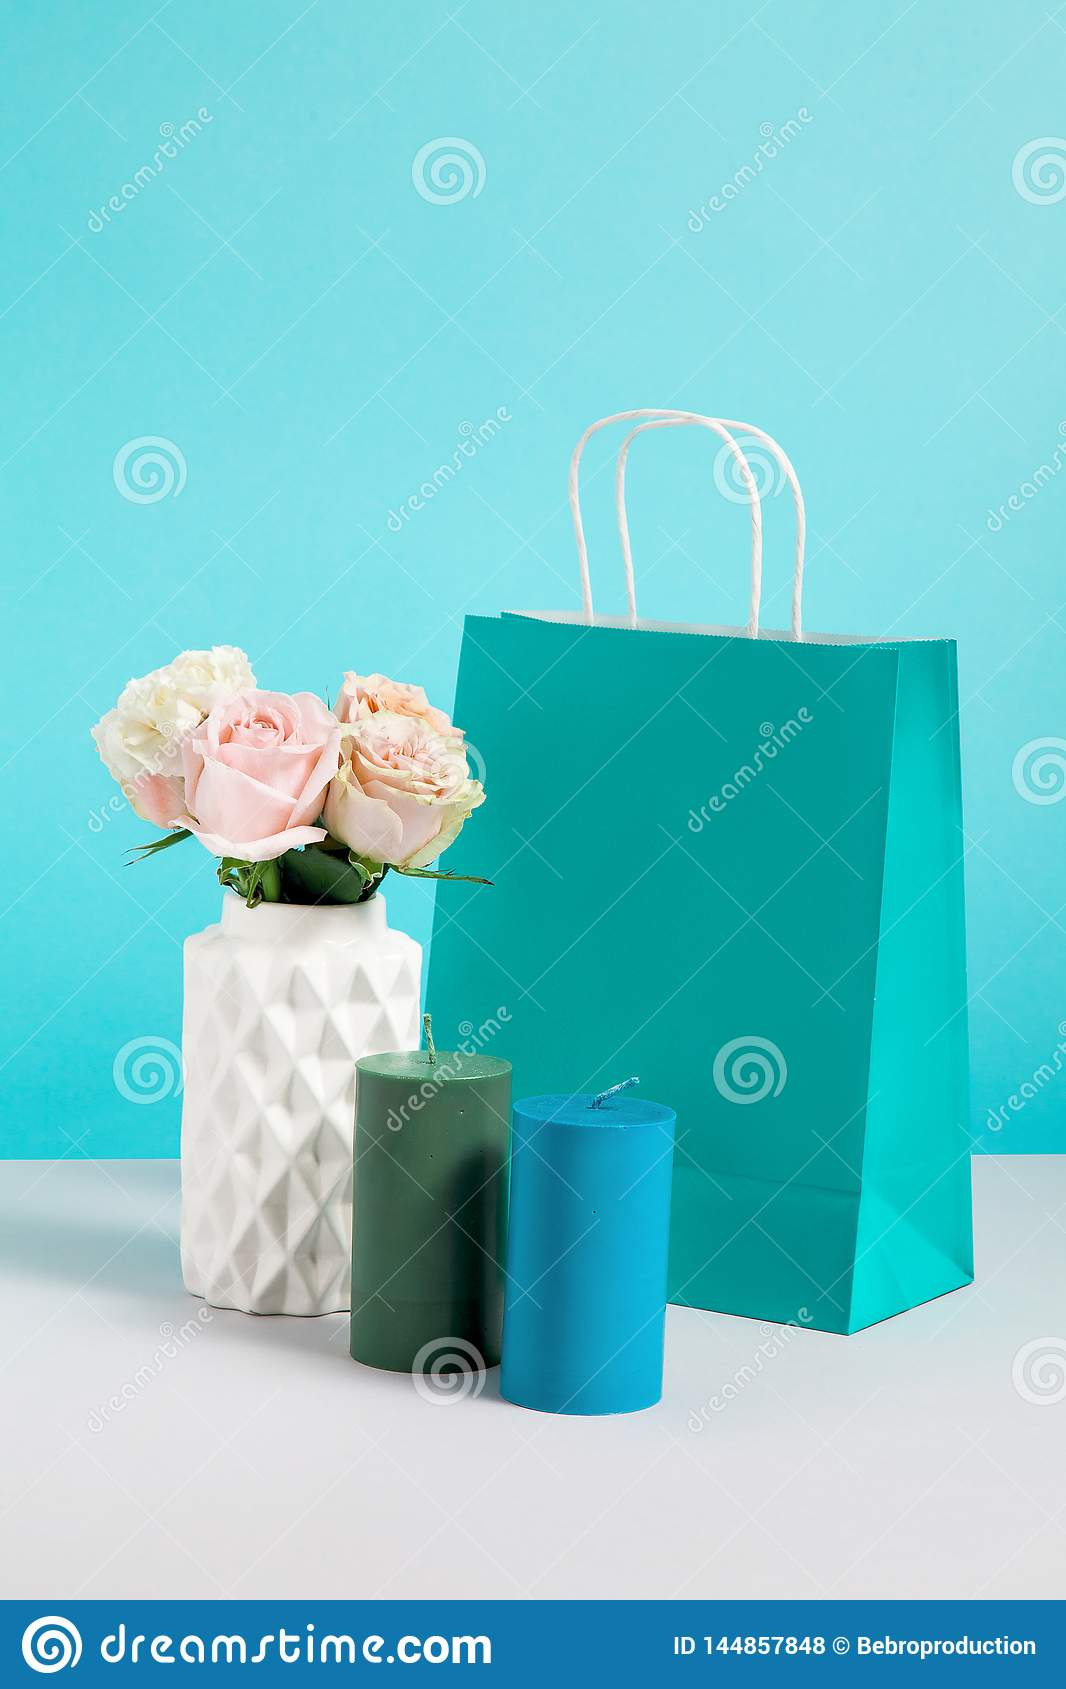 Still life image with flower in vase, candle and paper bag. Mockup of craft shopping bags. Concept for sales or discounts.